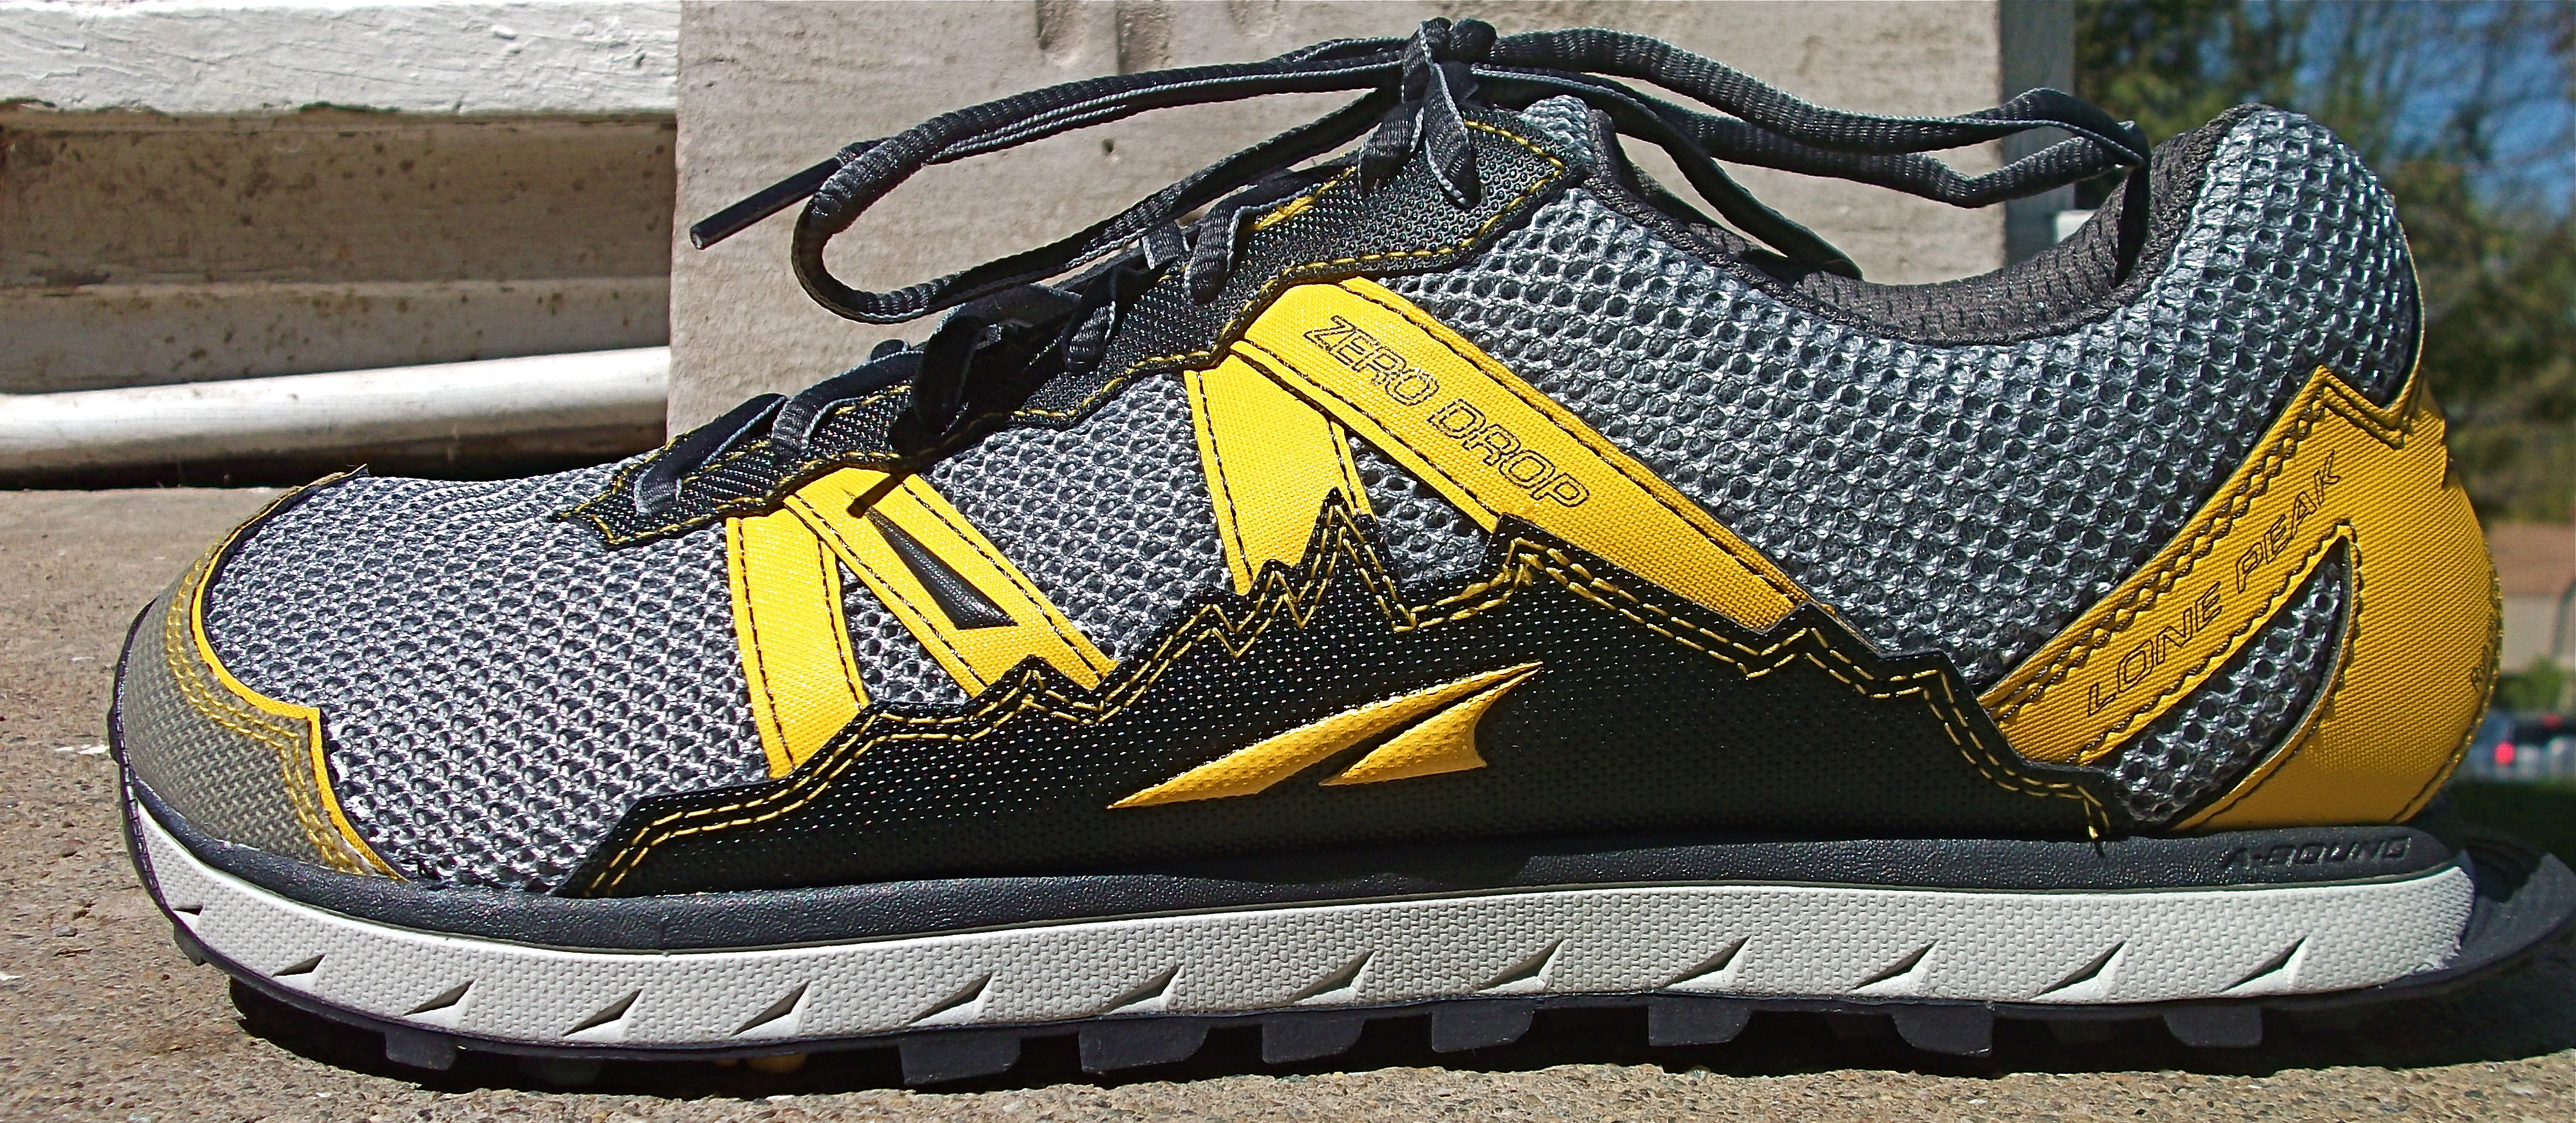 So I have been struggling with the decision to buy a new pair of trail shoes.  On the one hand I really want a pair of Vibram s new Spyridon LS. 4a124bc80